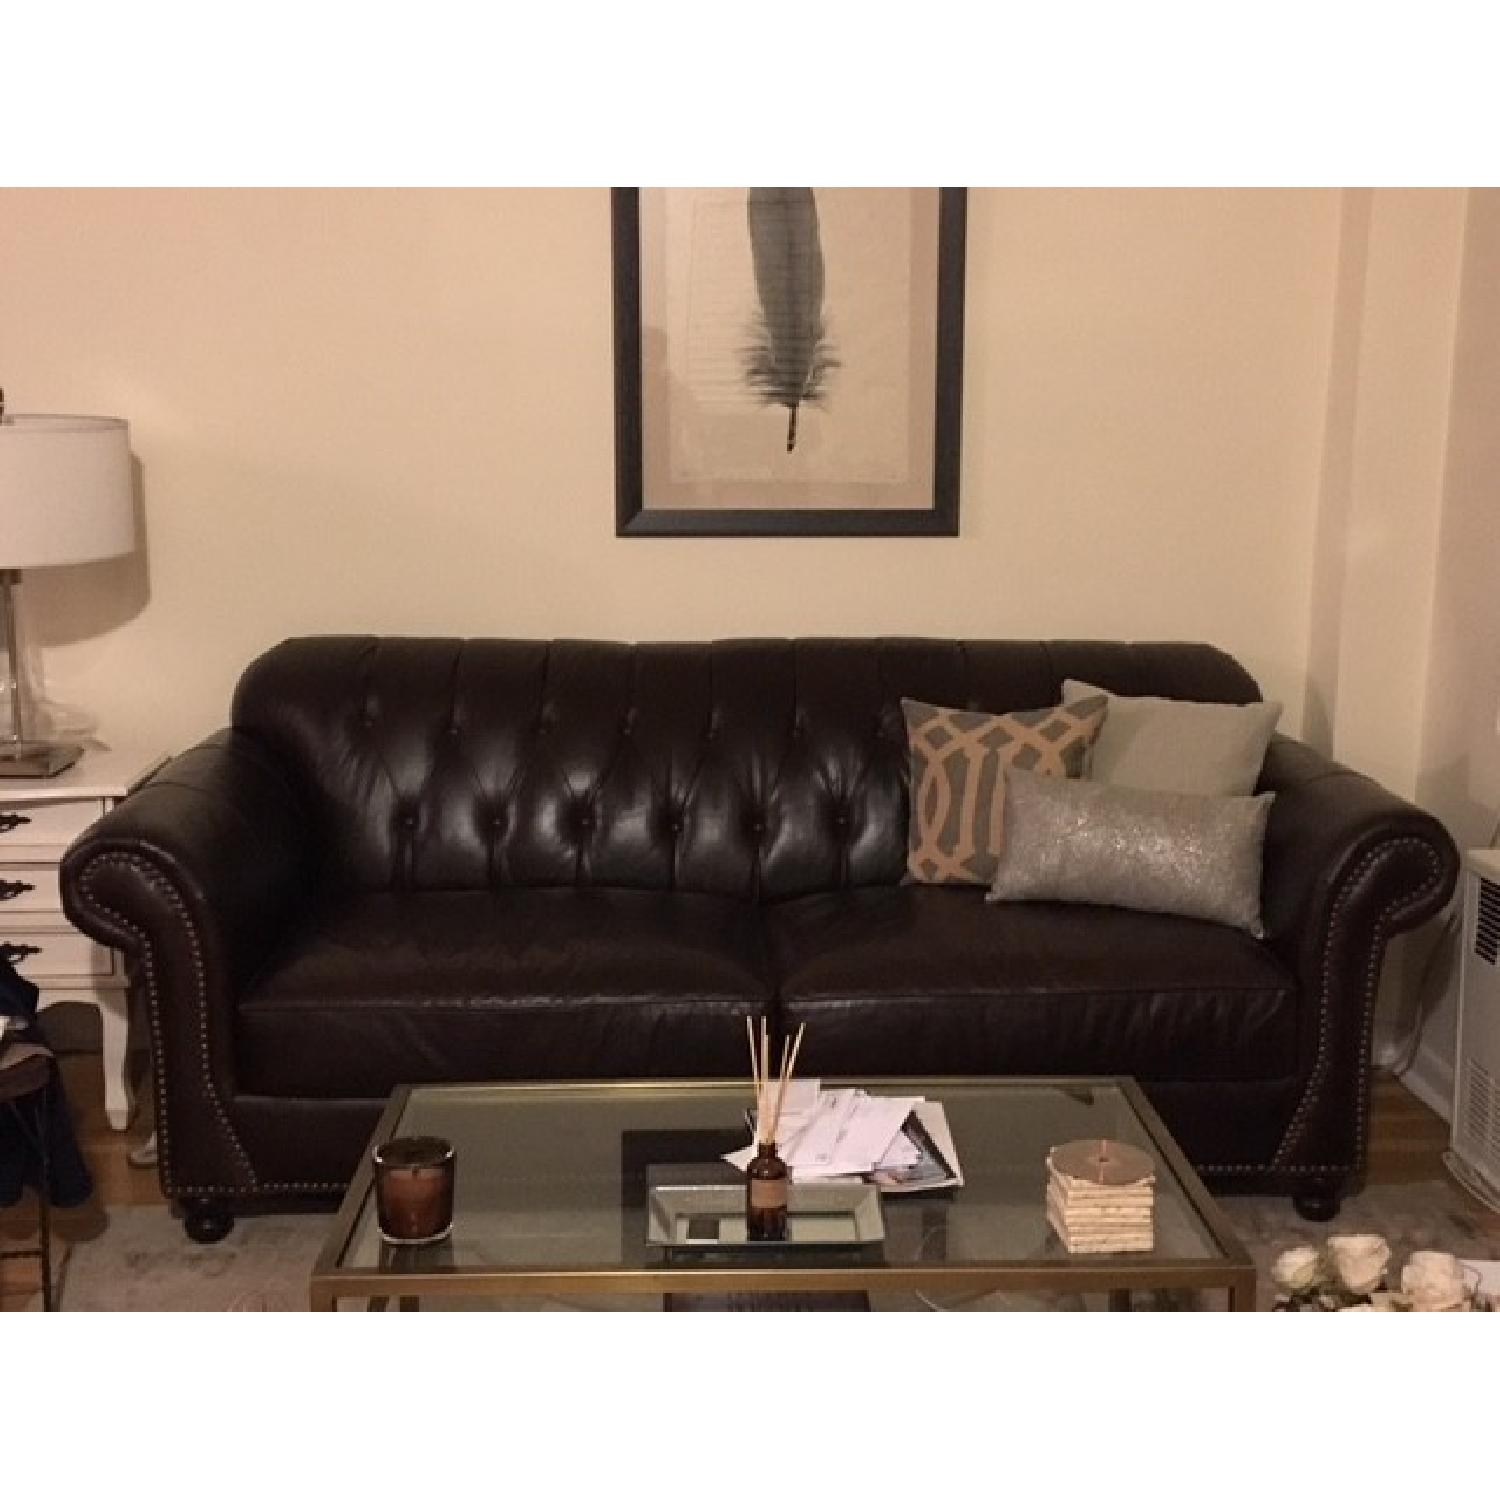 ABC Carpet & Home Brown Leather Couch w/ Nailhead Detailing - image-3